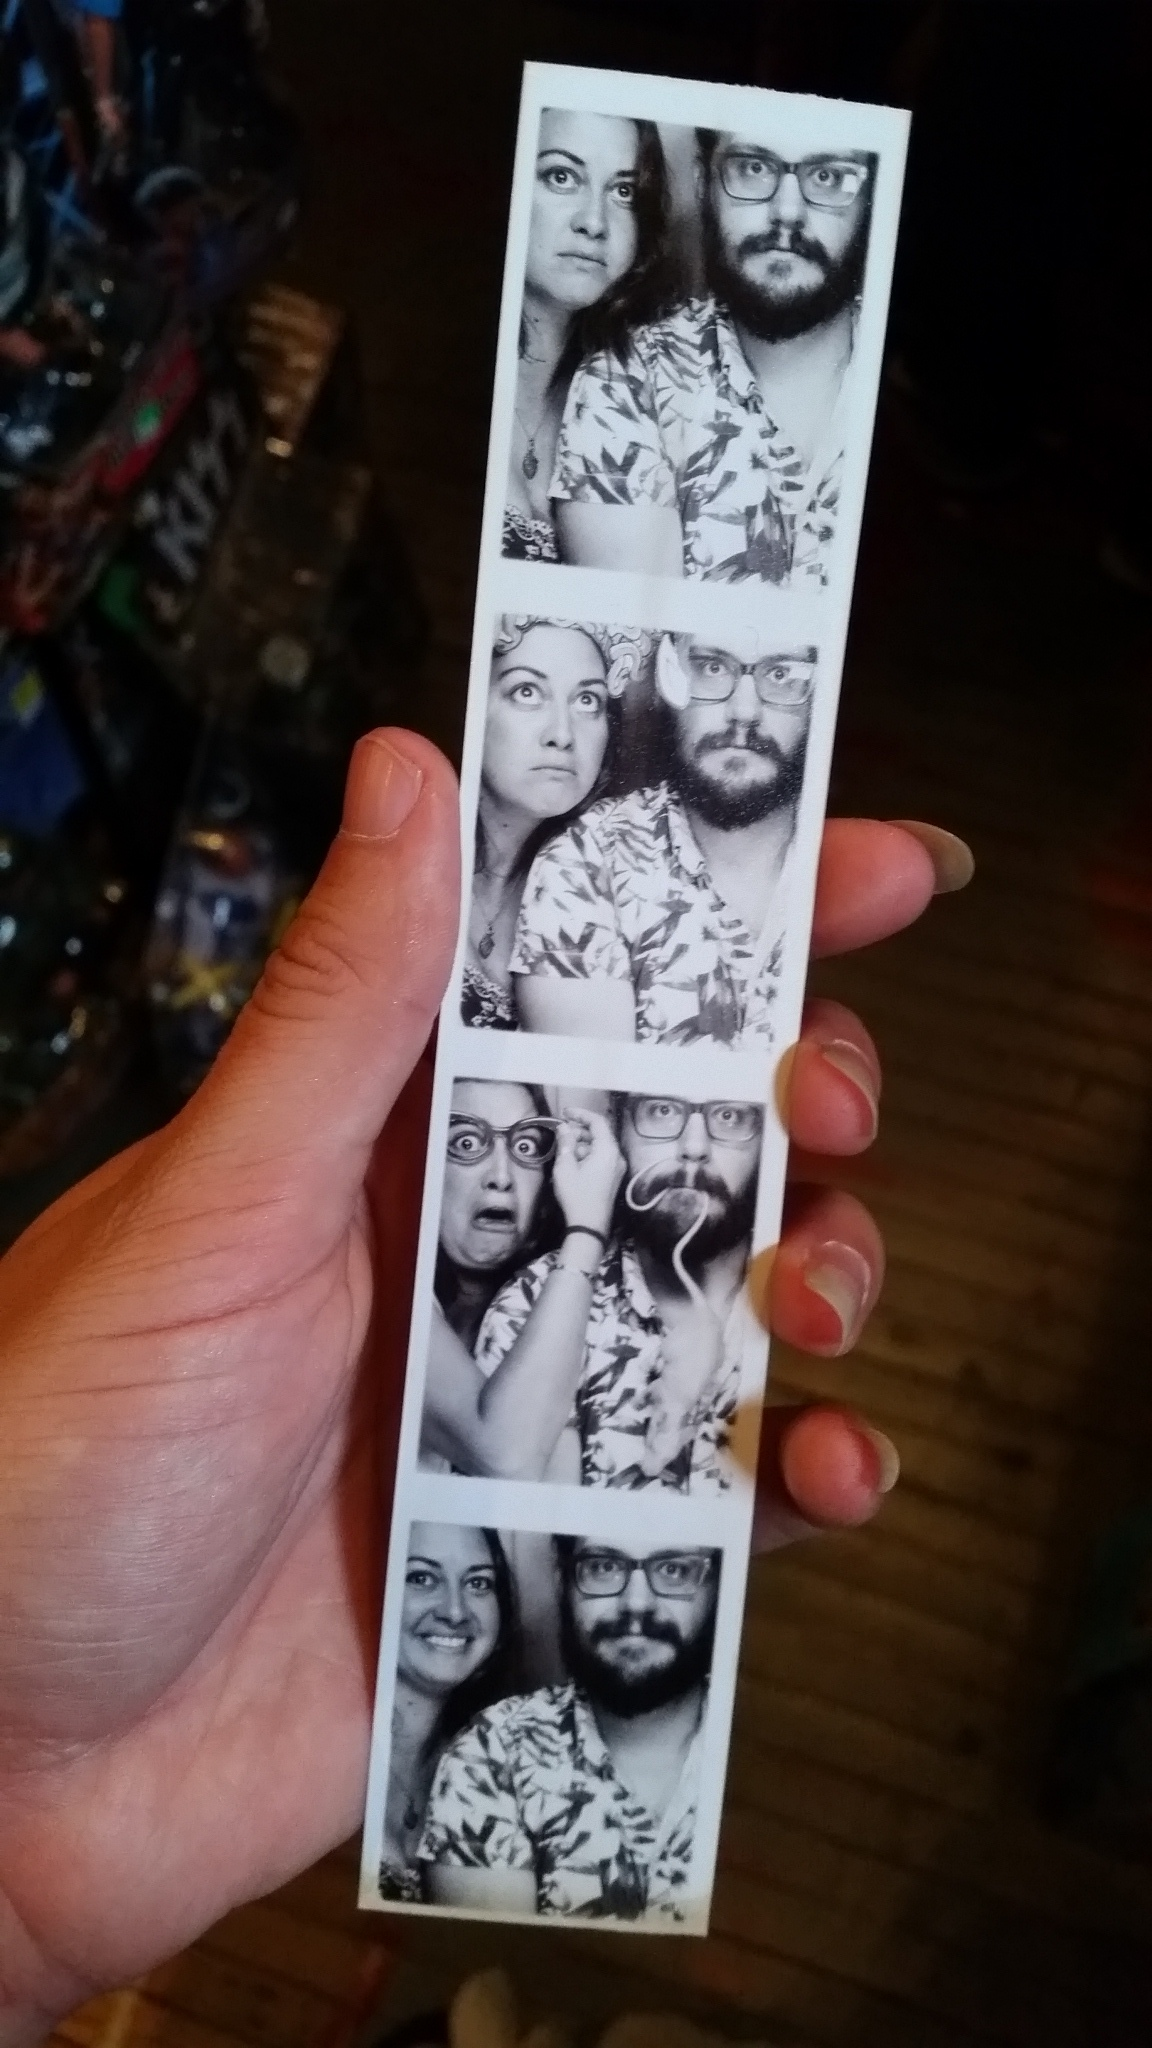 We get our photo taken in a vintage photobooth in Columbus